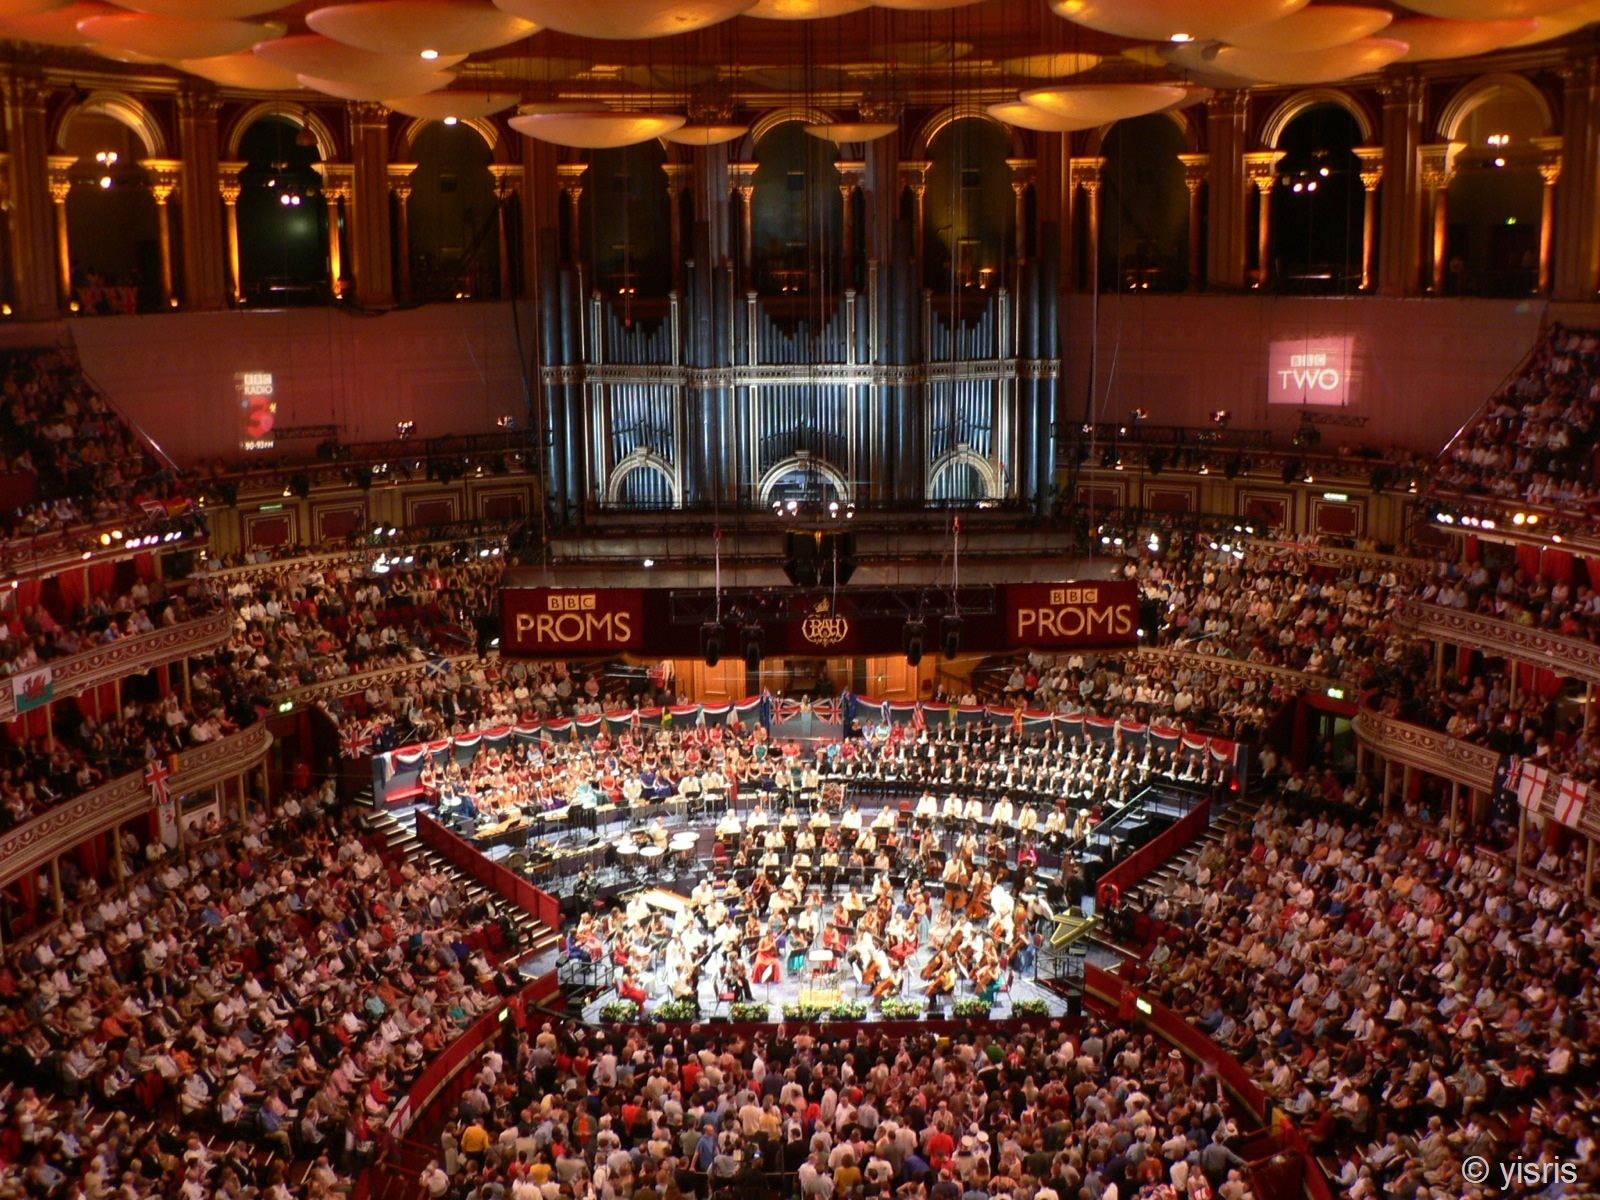 Last Night of the Proms - Royal Albert Hall, LondonSaturday 14 September 2019